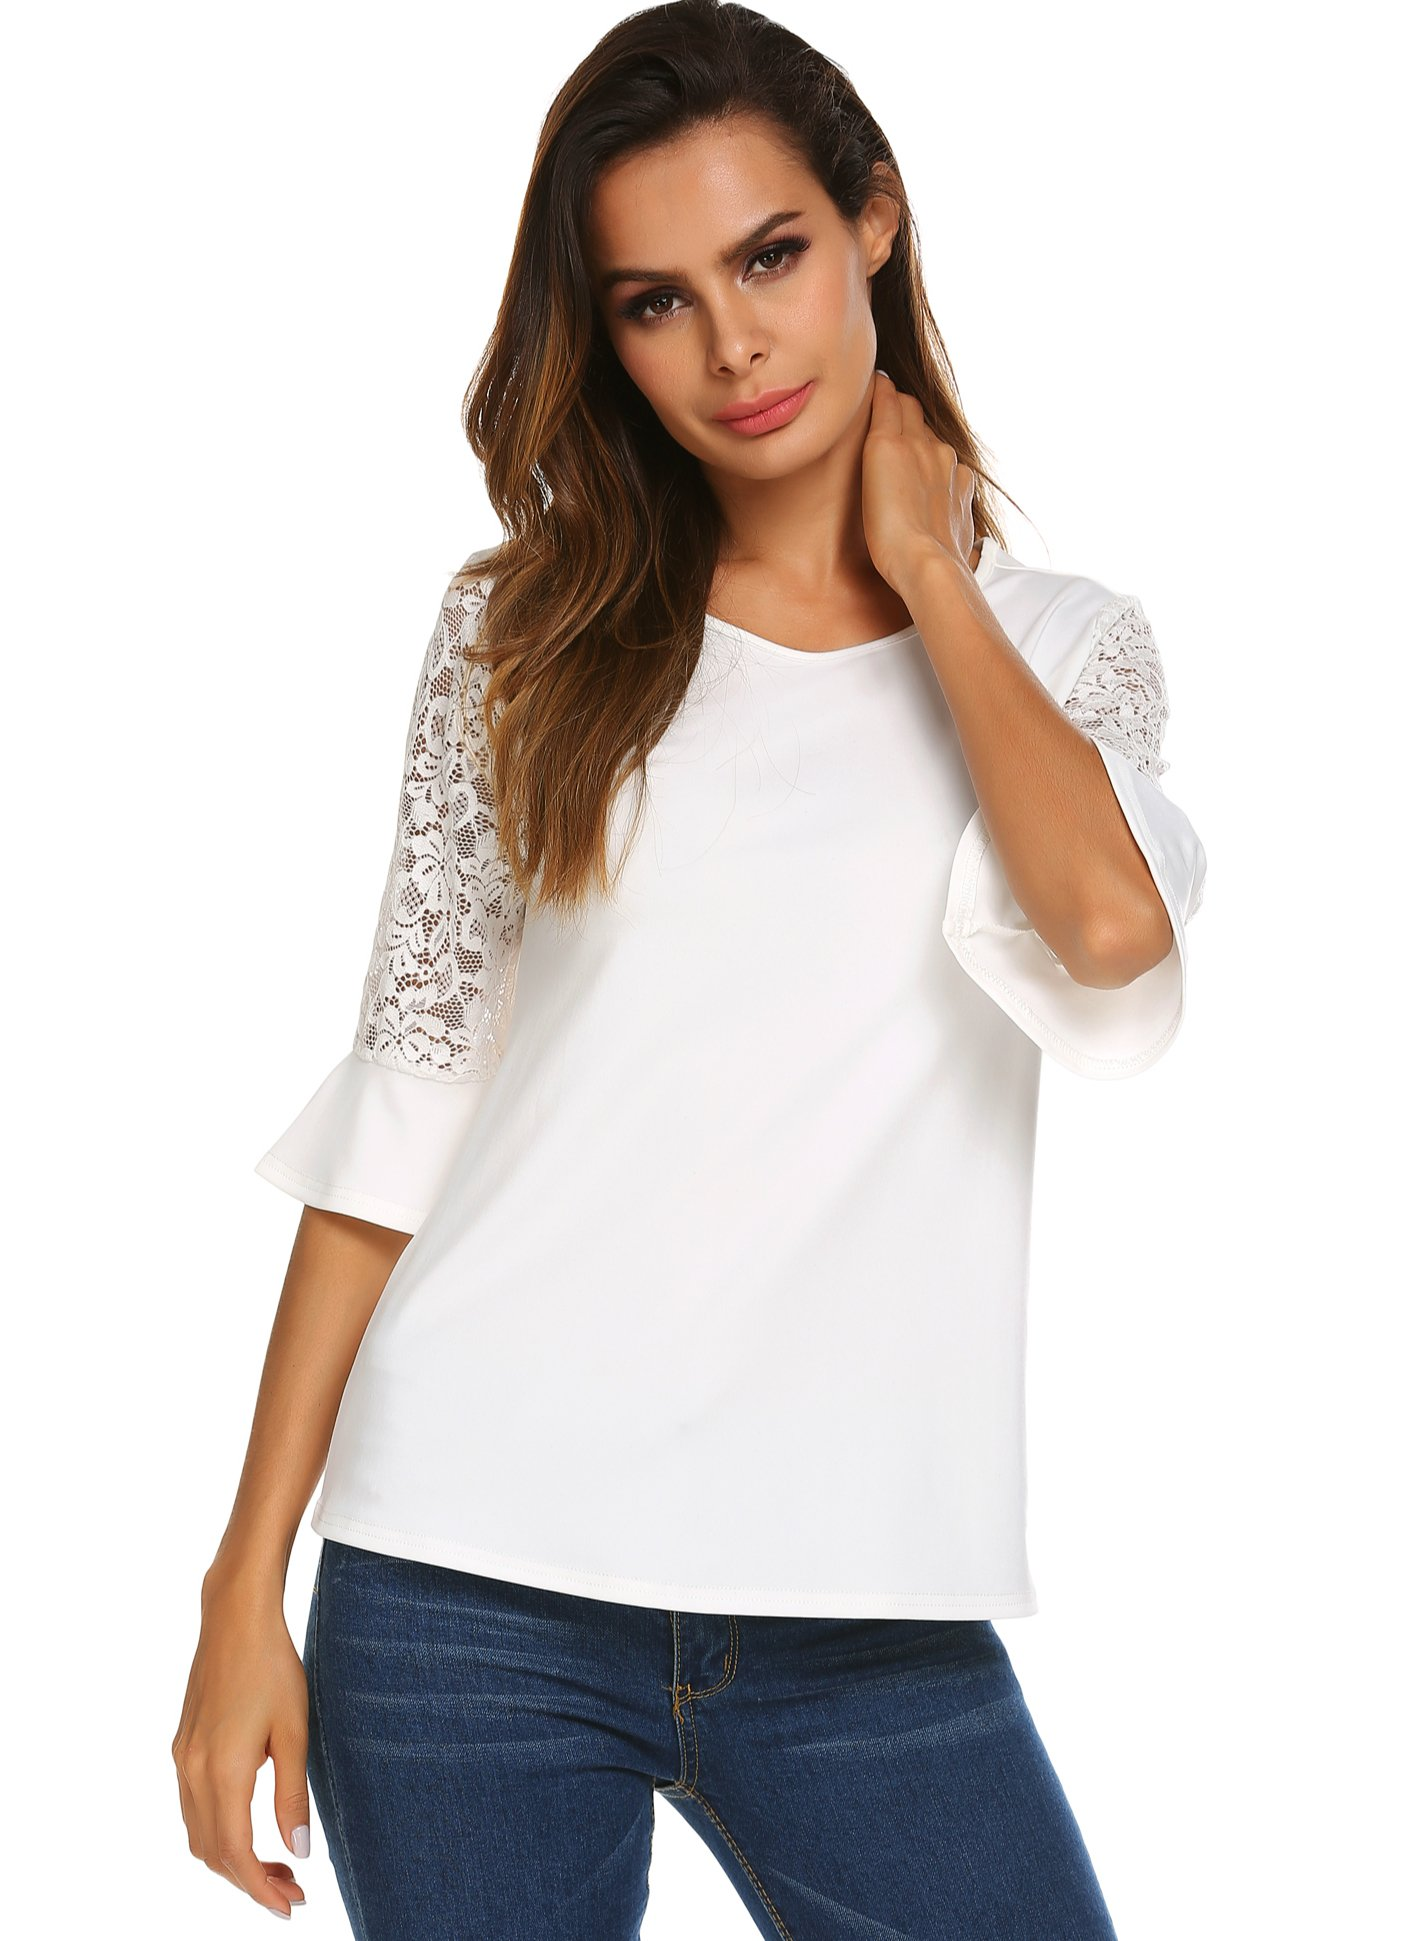 Yayado Women's 3/4 Lace Bell Sleeve Round Neck Solid Summer T-Shirt Tops Blouse, White, Medium